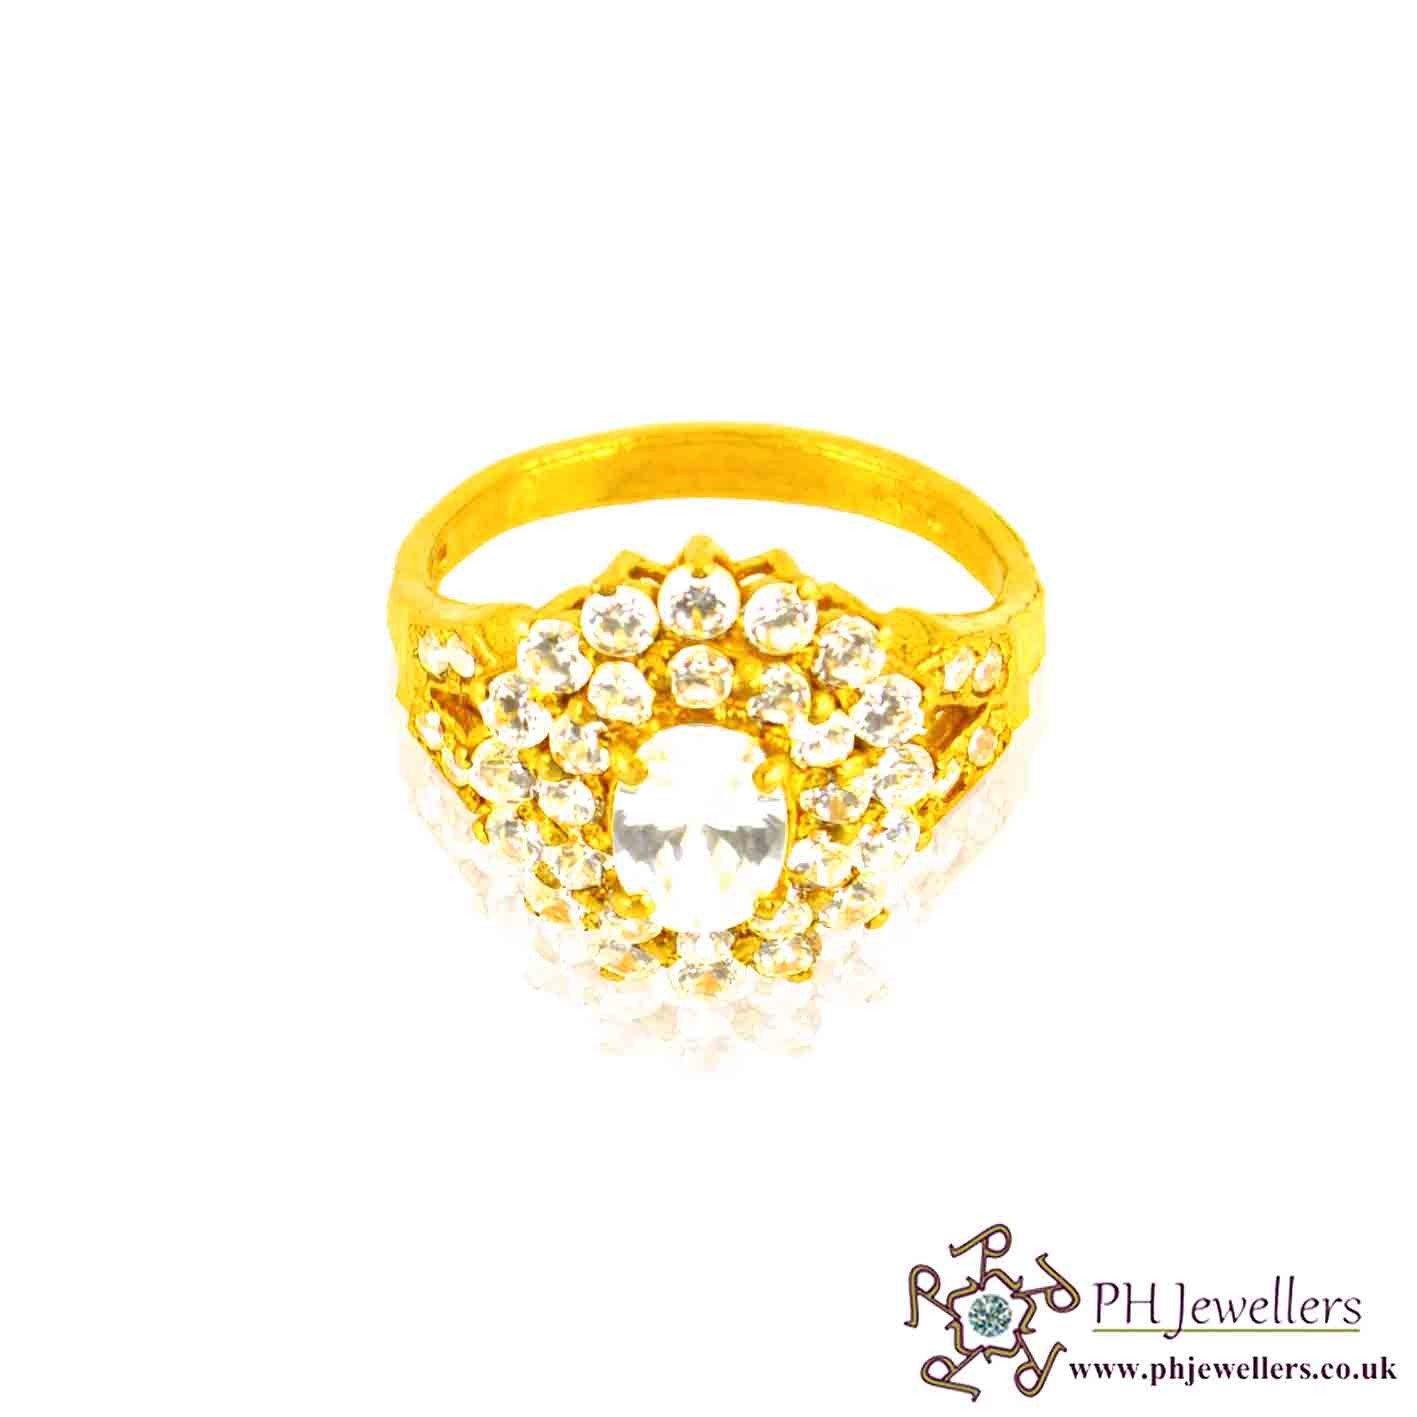 22ct 916 Hallmark Yellow Gold Oval Size L,M,N Ring CZ SR13